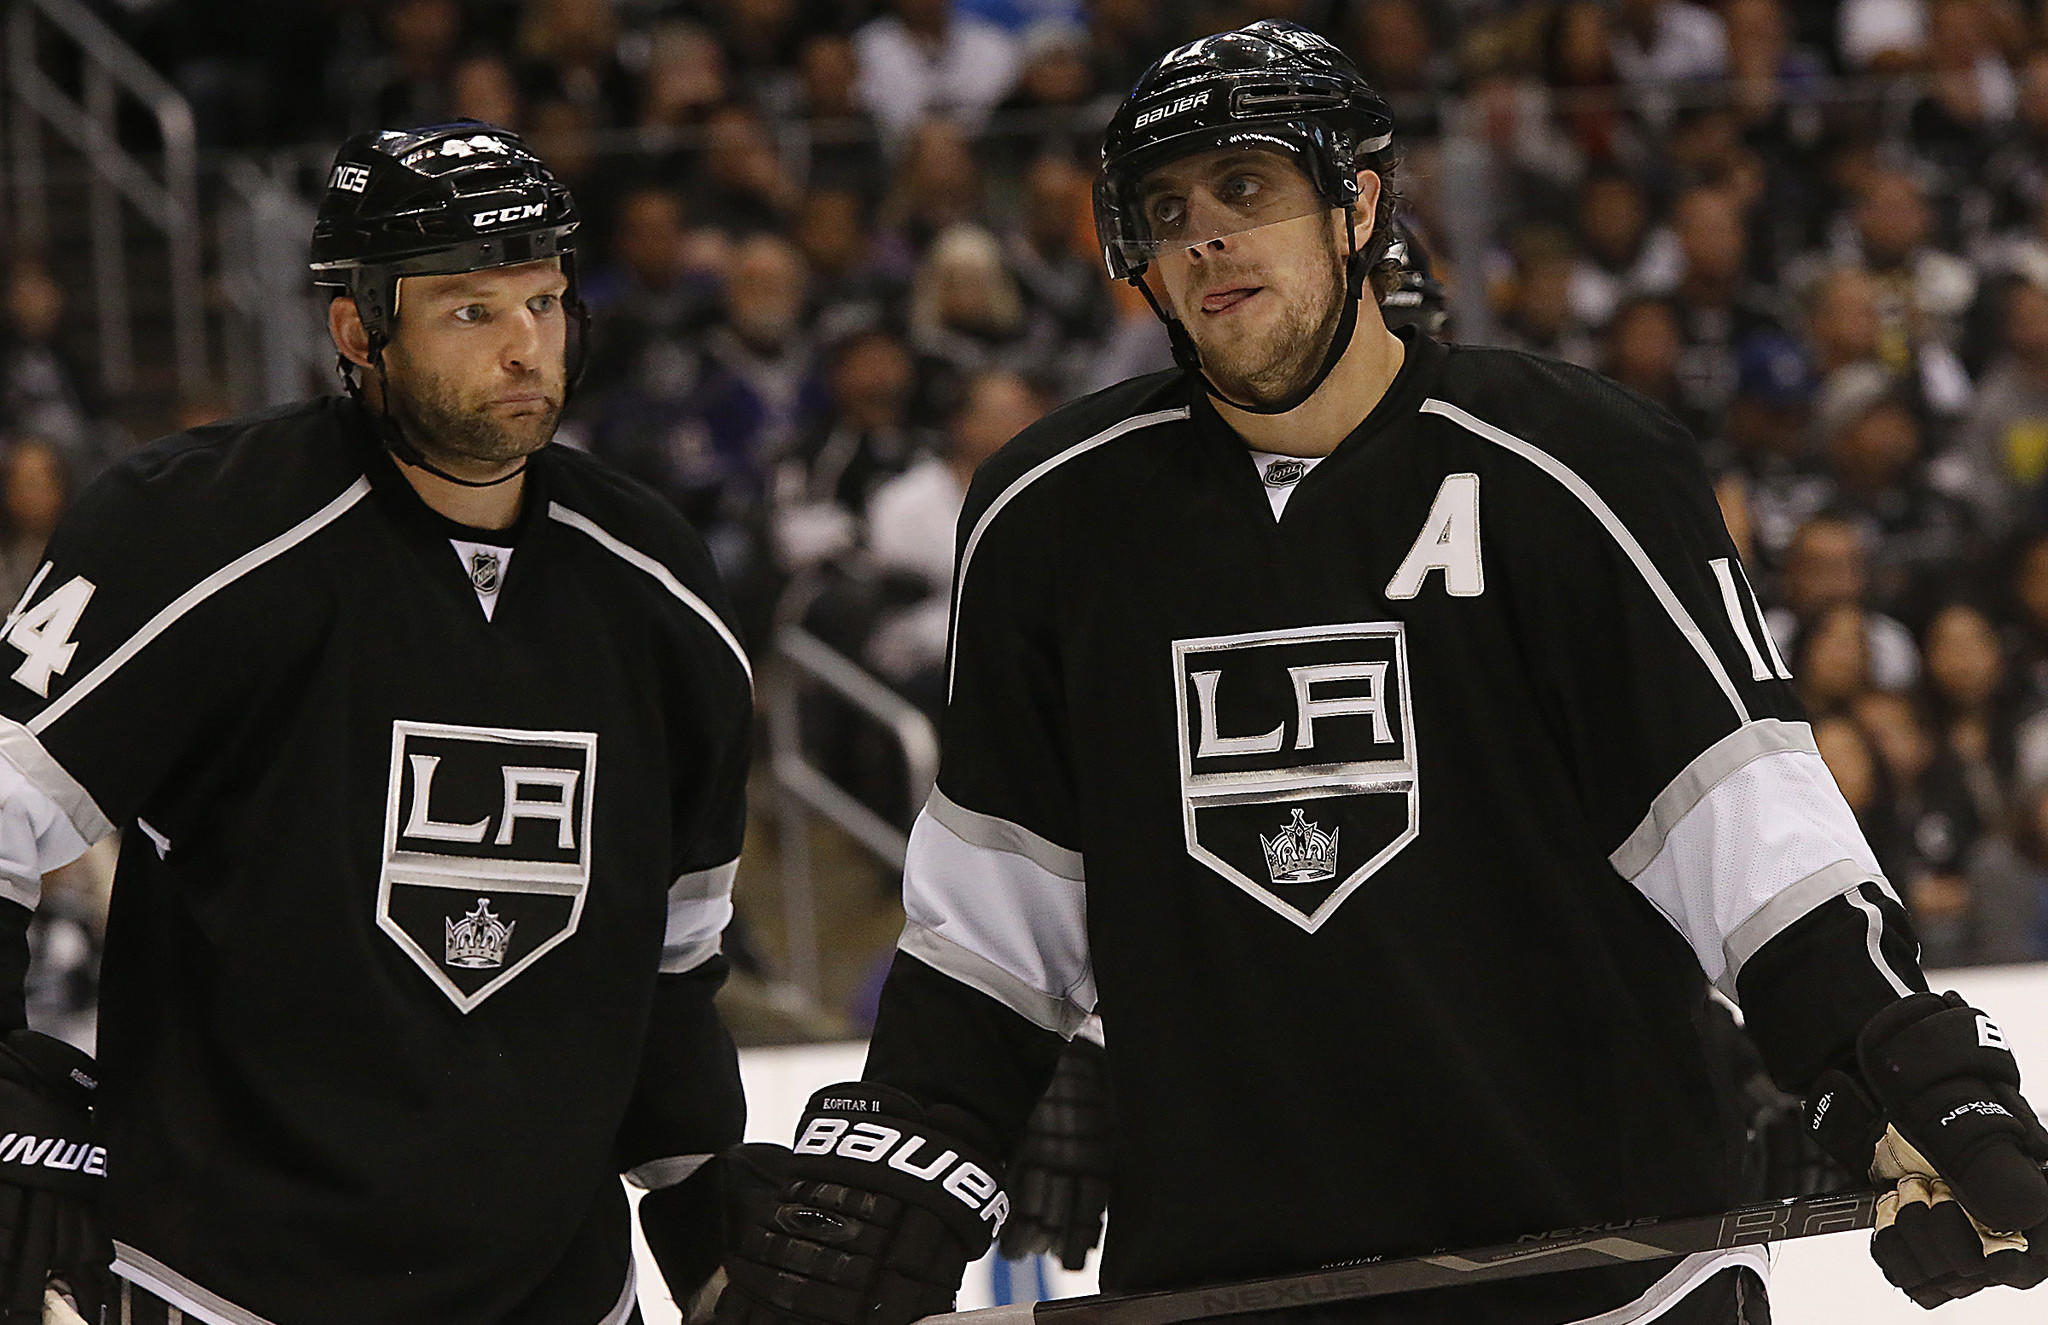 Kings teammates Robyn Regehr, left, and Anze Kopitar line up for a faceoff during the Kings' 4-3 overtime loss to the San Jose Sharks on Tuesday. The Kings' season will be on the line Thursday in Game 4 of the Western Conference quarterfinals.